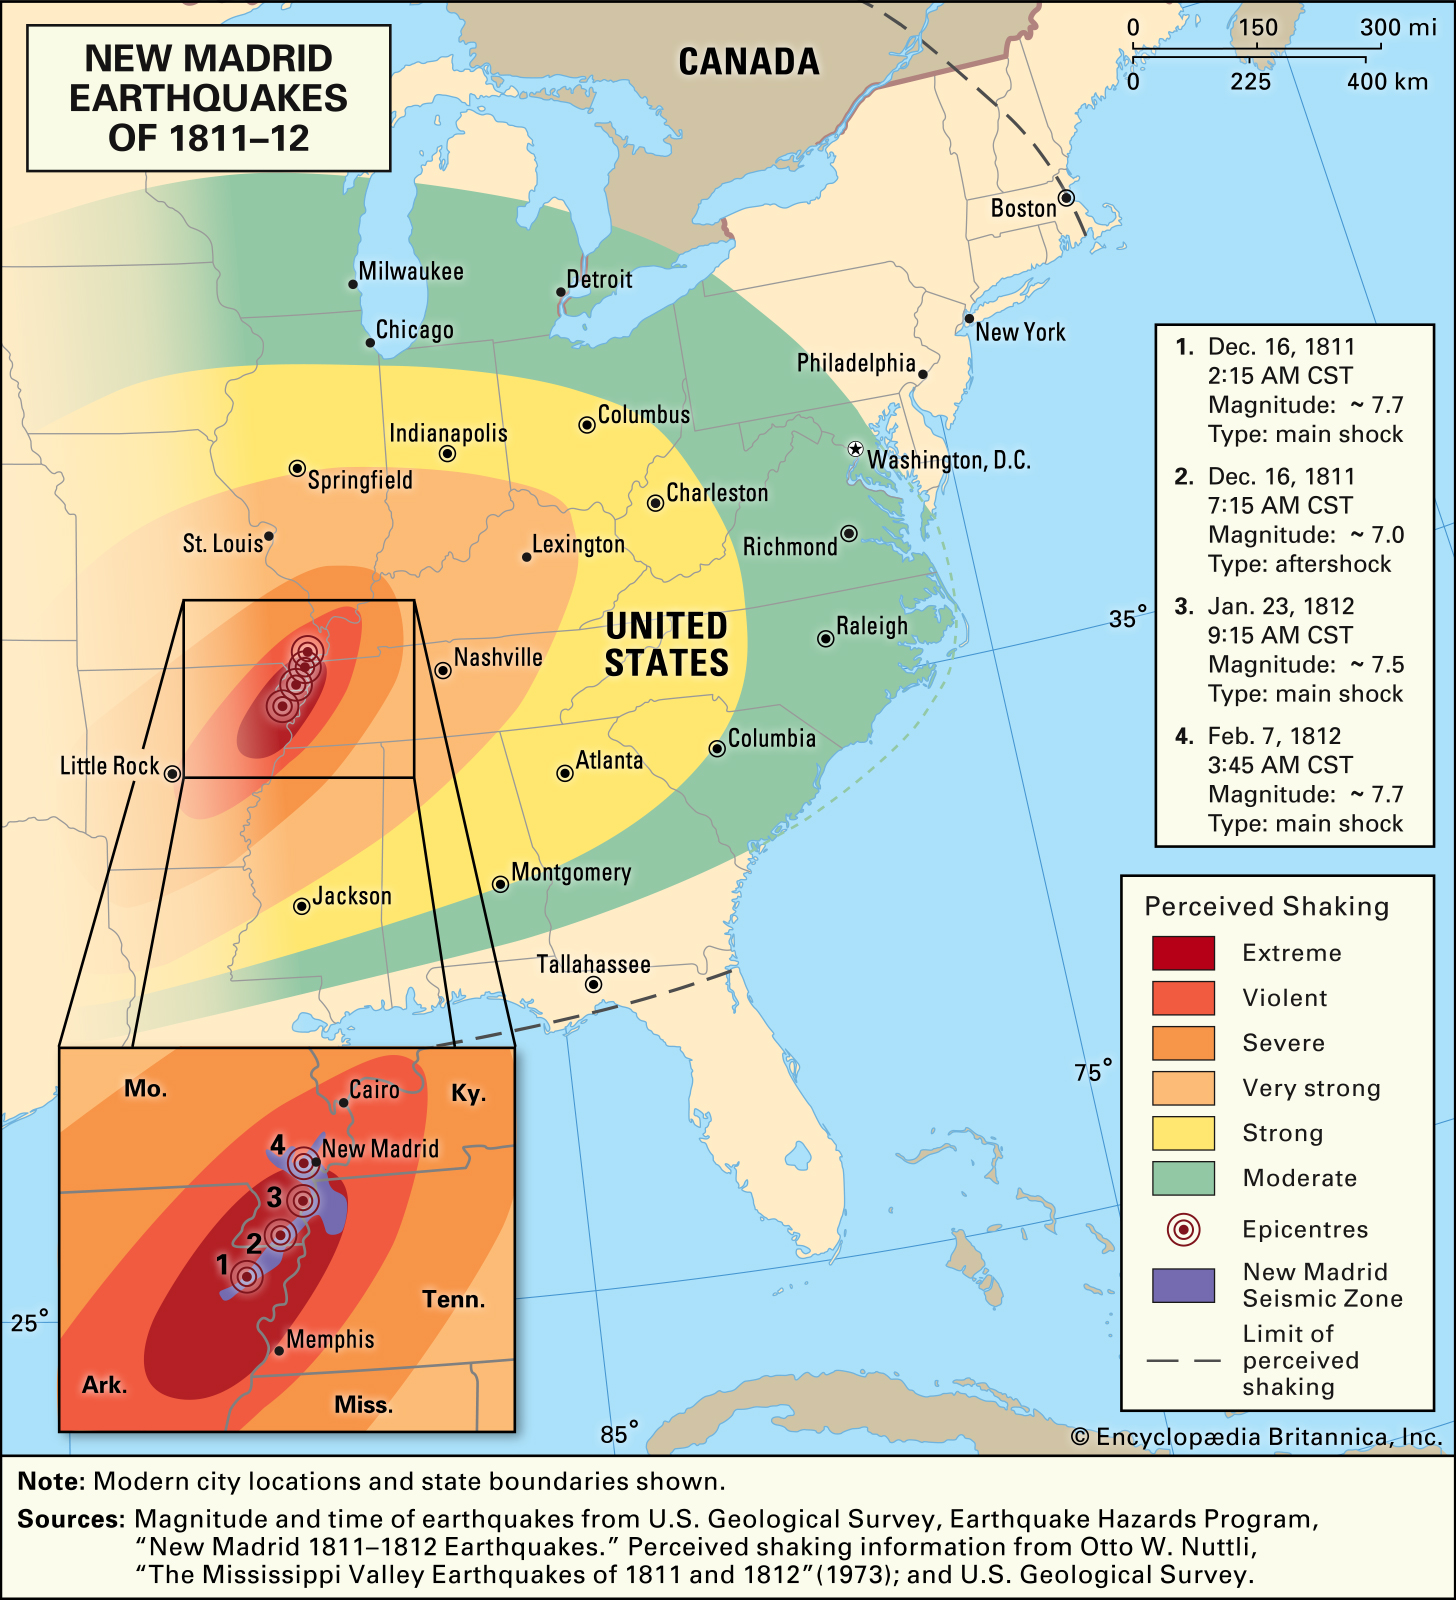 Scary Phenomena That Occurred During The New Madrid